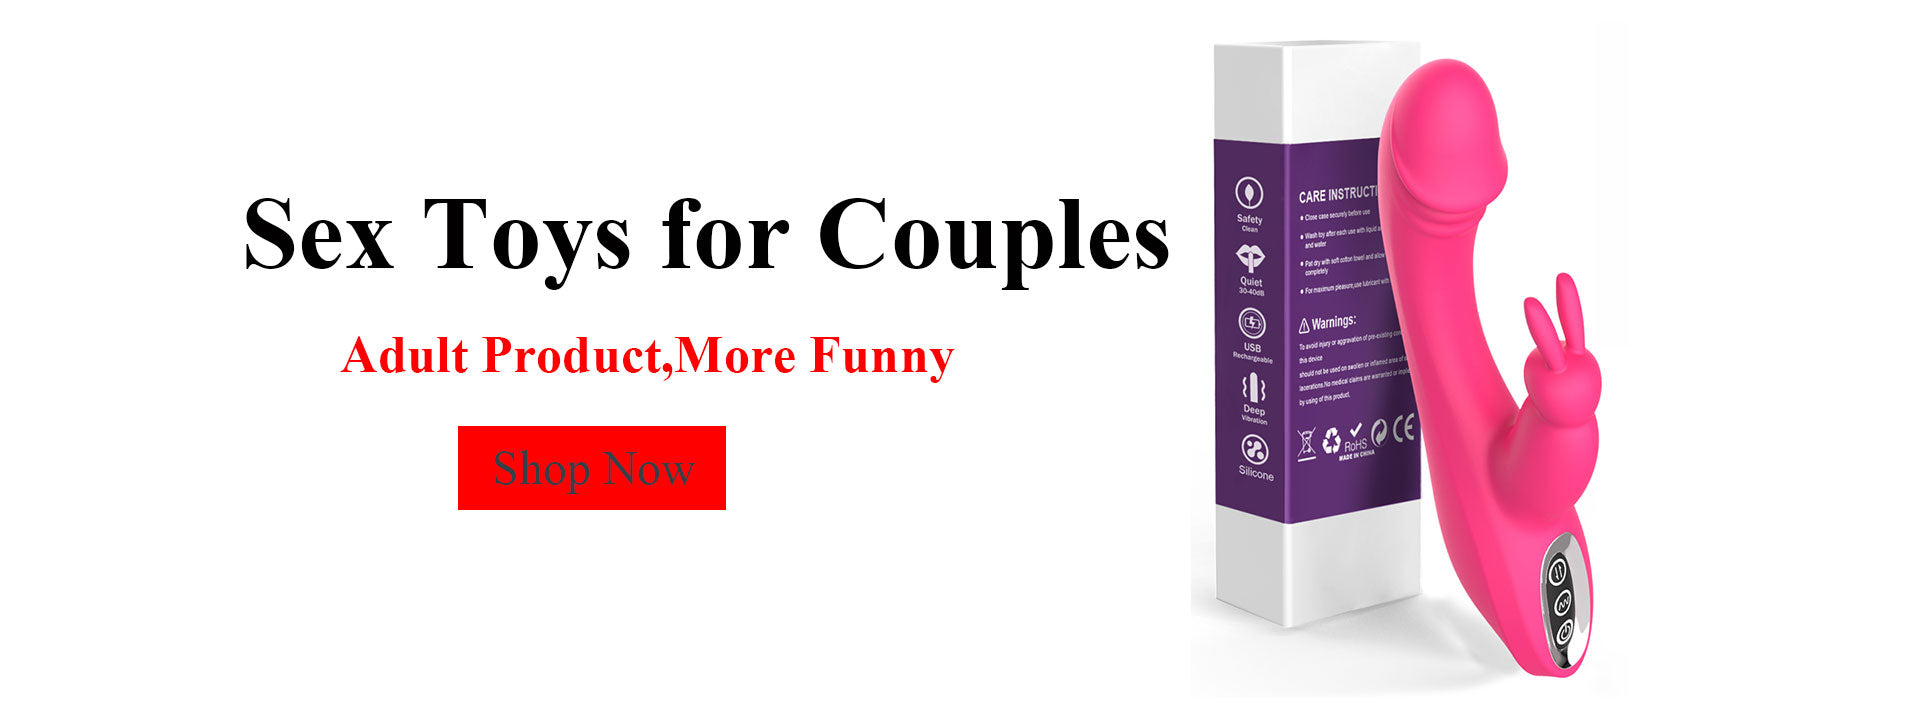 Sex-Toys-for-Couples-Banner